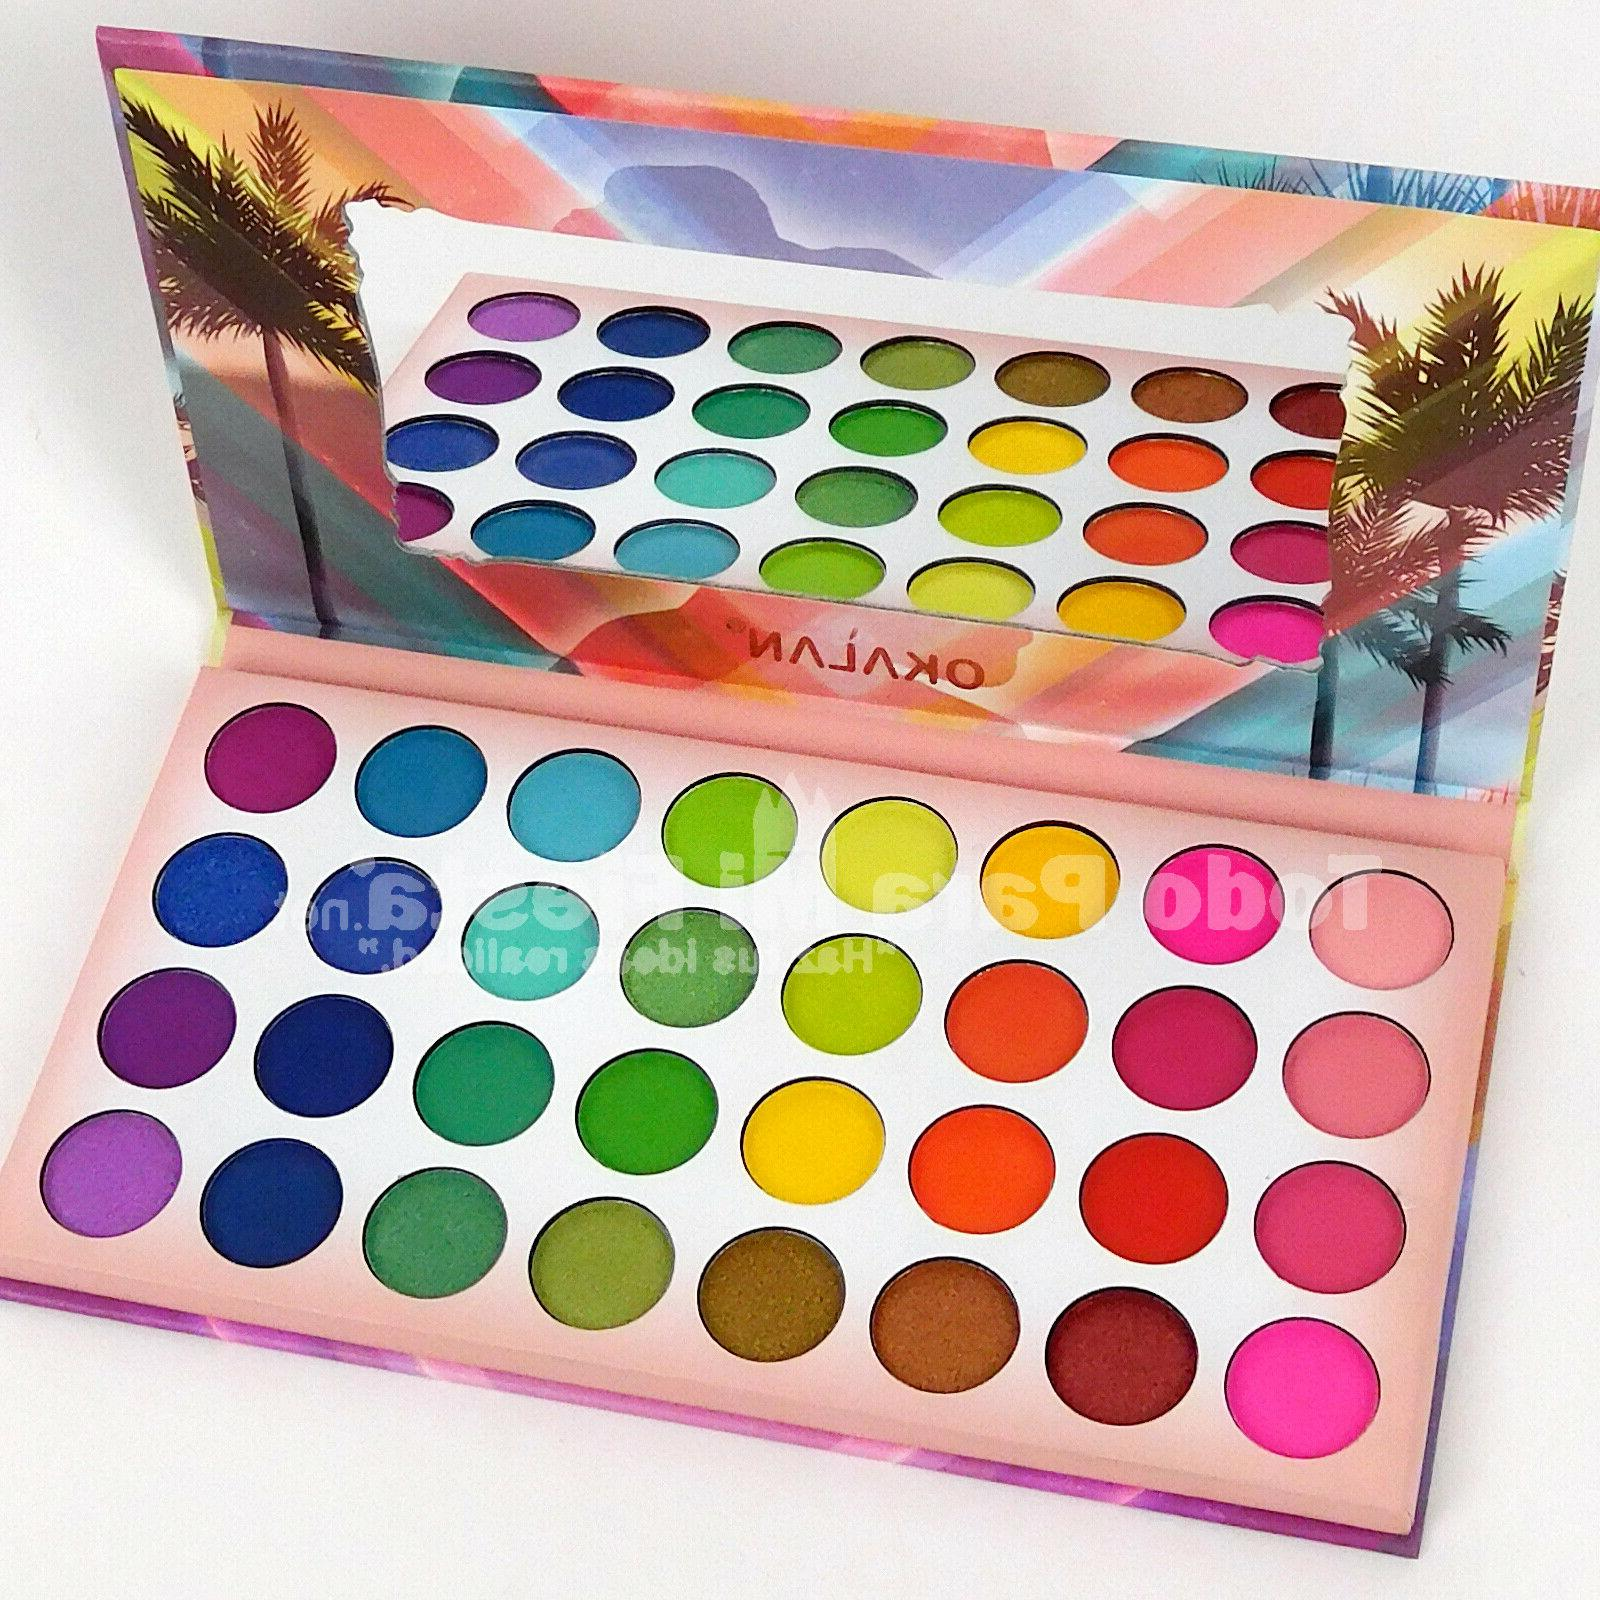 mystical eyeshadow palette high pigmented saturated shades